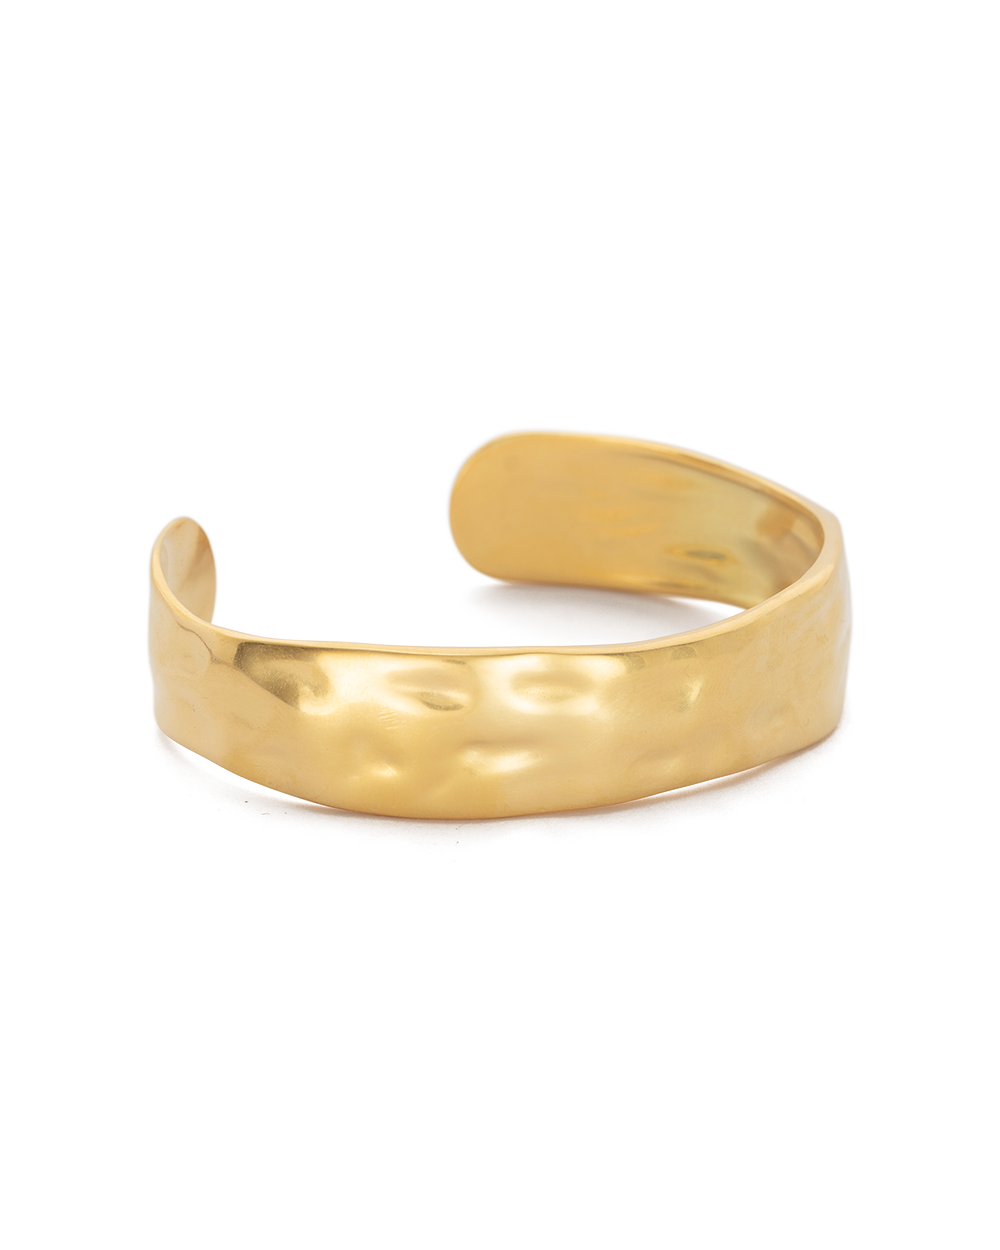 ELEMENTS CUFF MEDIUM (18K-GOLD-PLATED) - SIDE